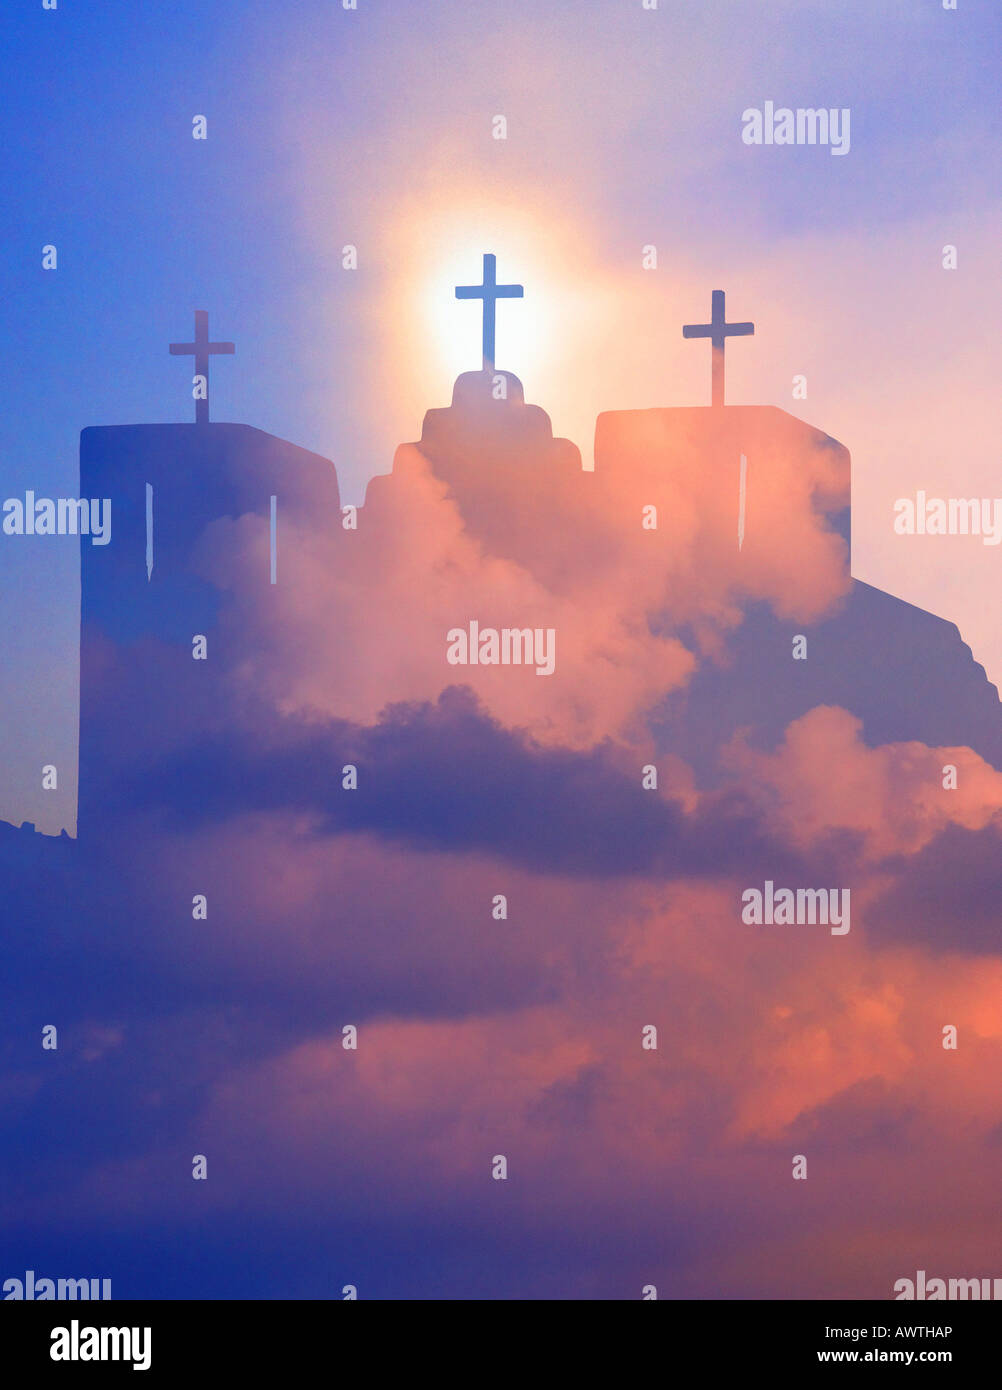 Church with three Crosses, New Mexico - Stock Image